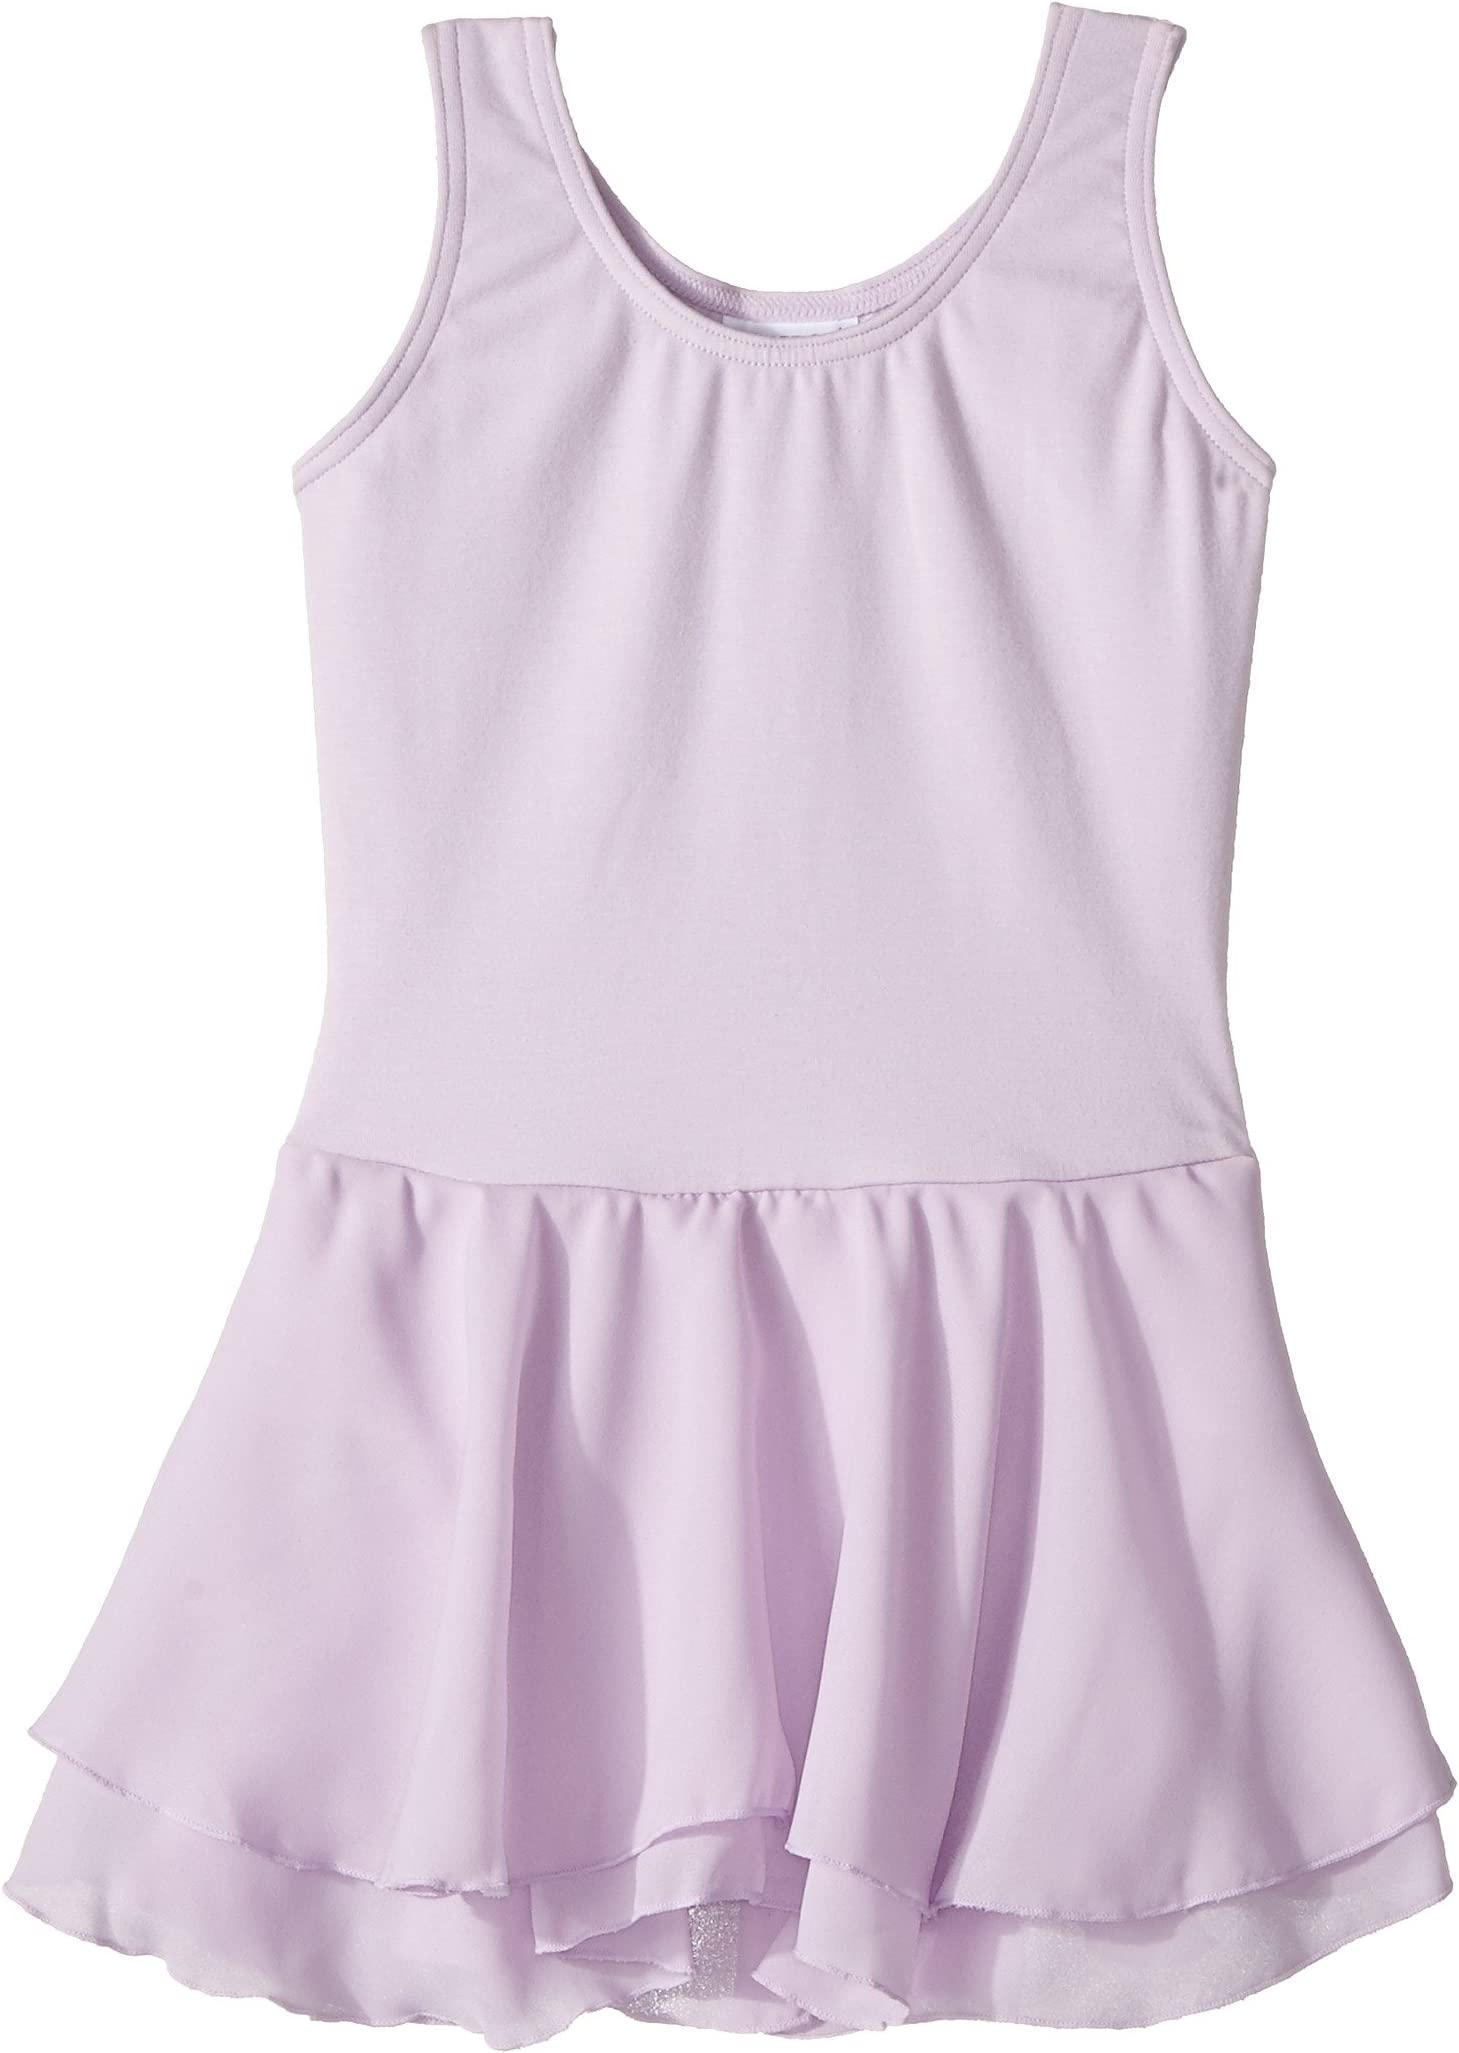 a51081f910a72 Kids': Free shipping on clothing, shoes, and more! | Zappos.com